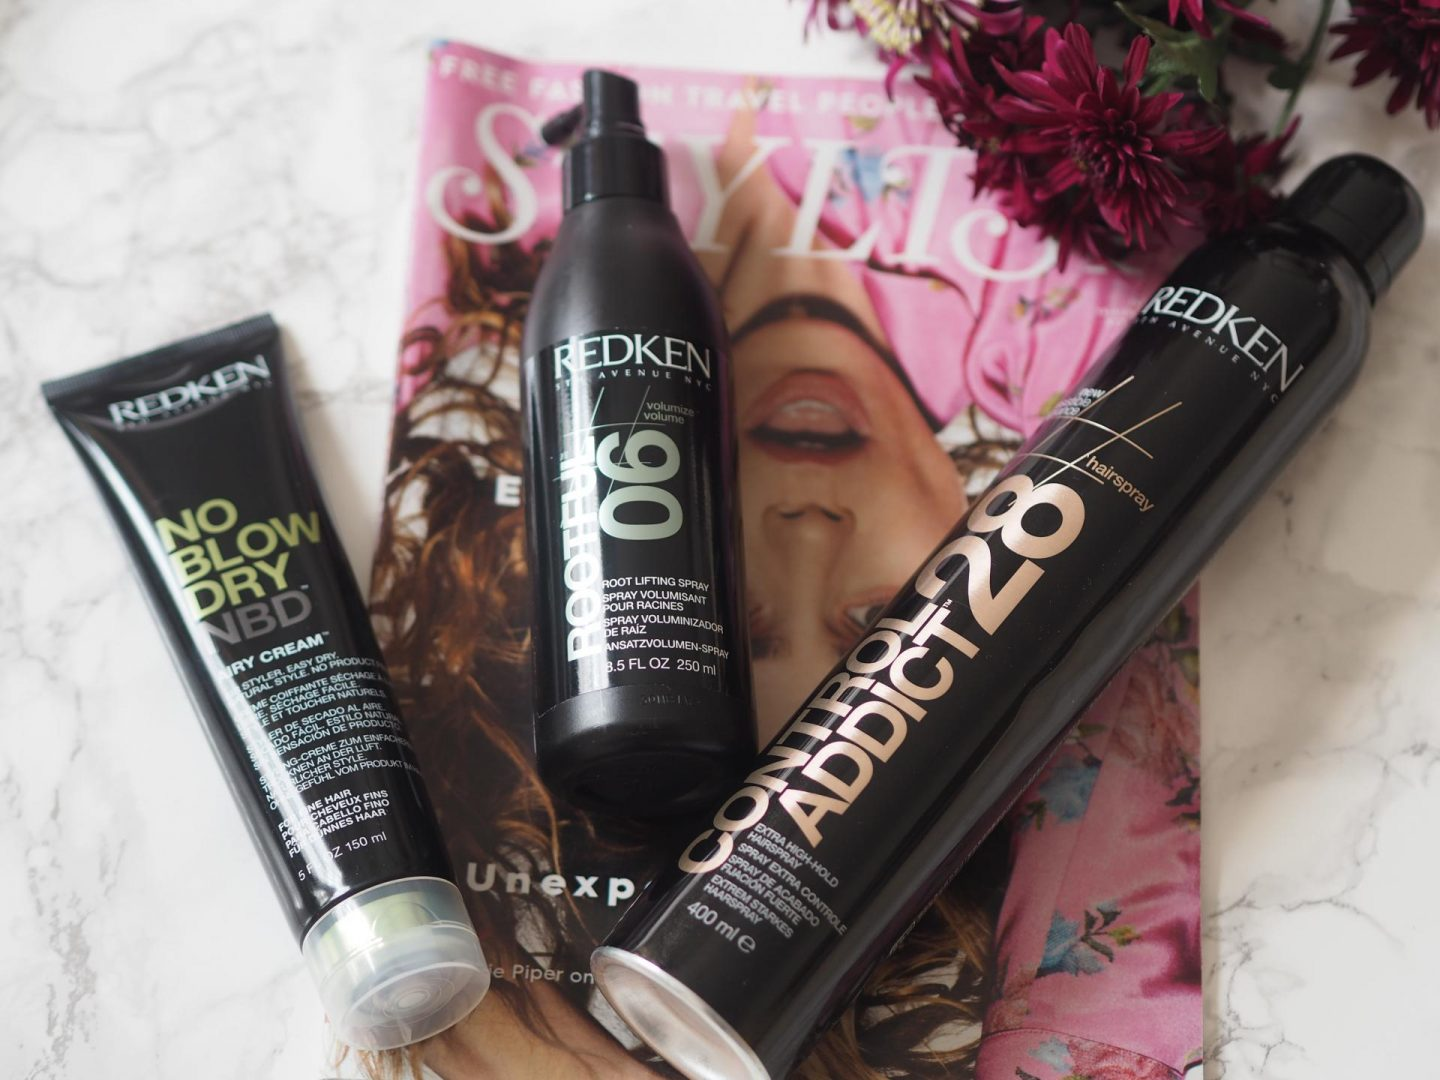 Beauty Haul - Product: Redken Control 28 Addict